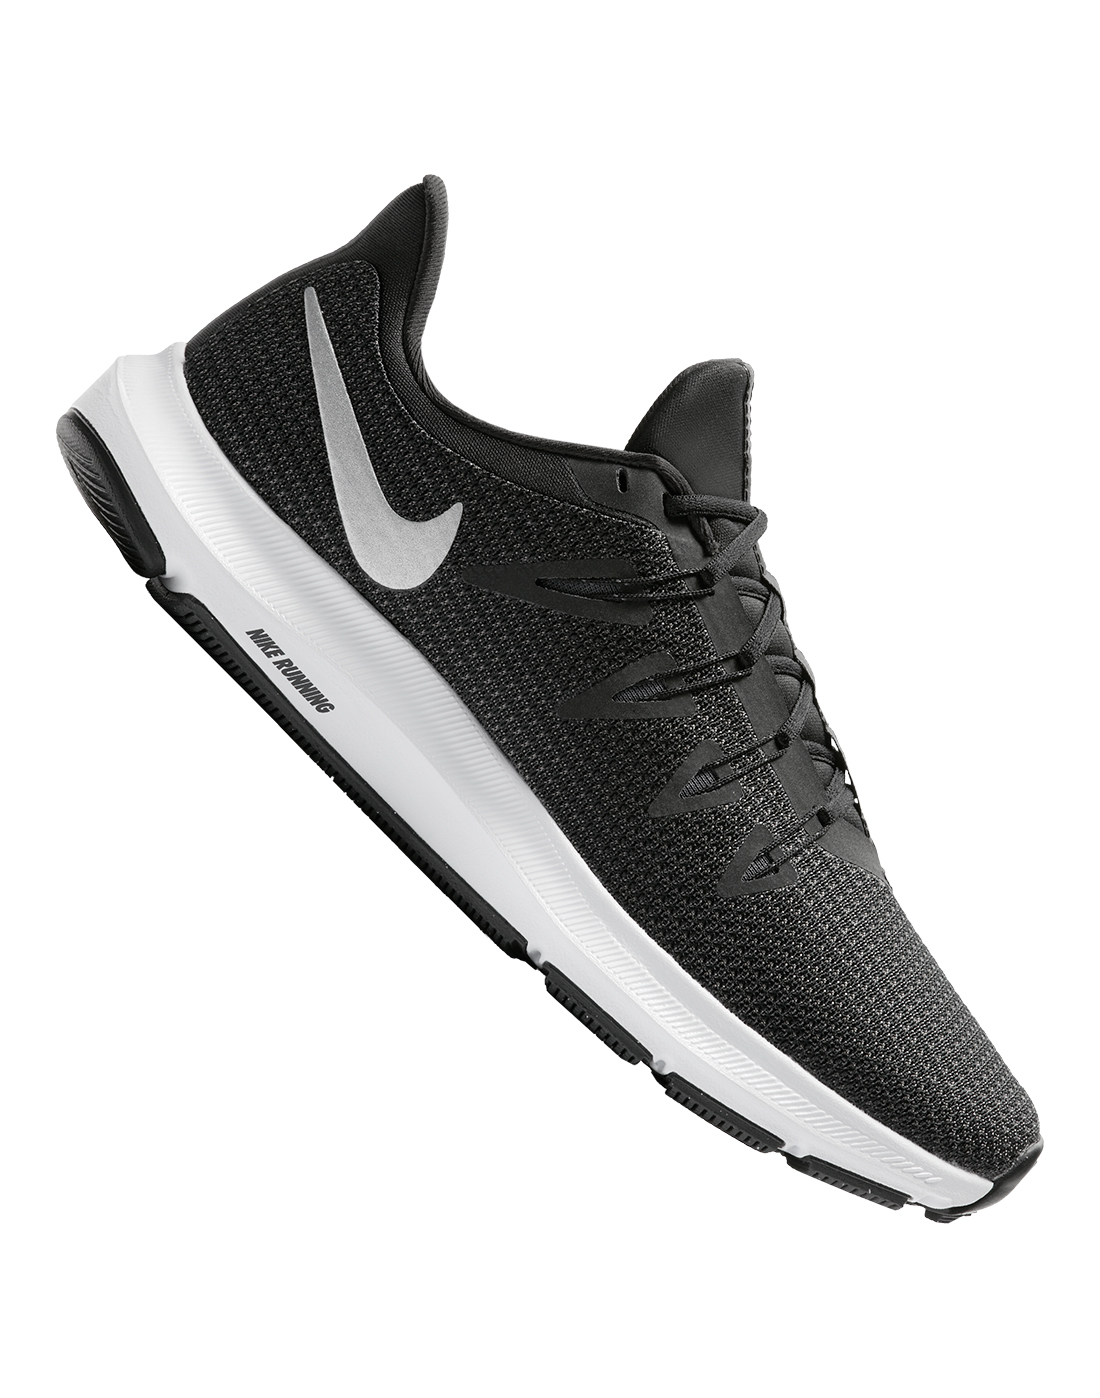 6aed9999f Women's Black Nike Quest Running Shoes | Life Style Sports